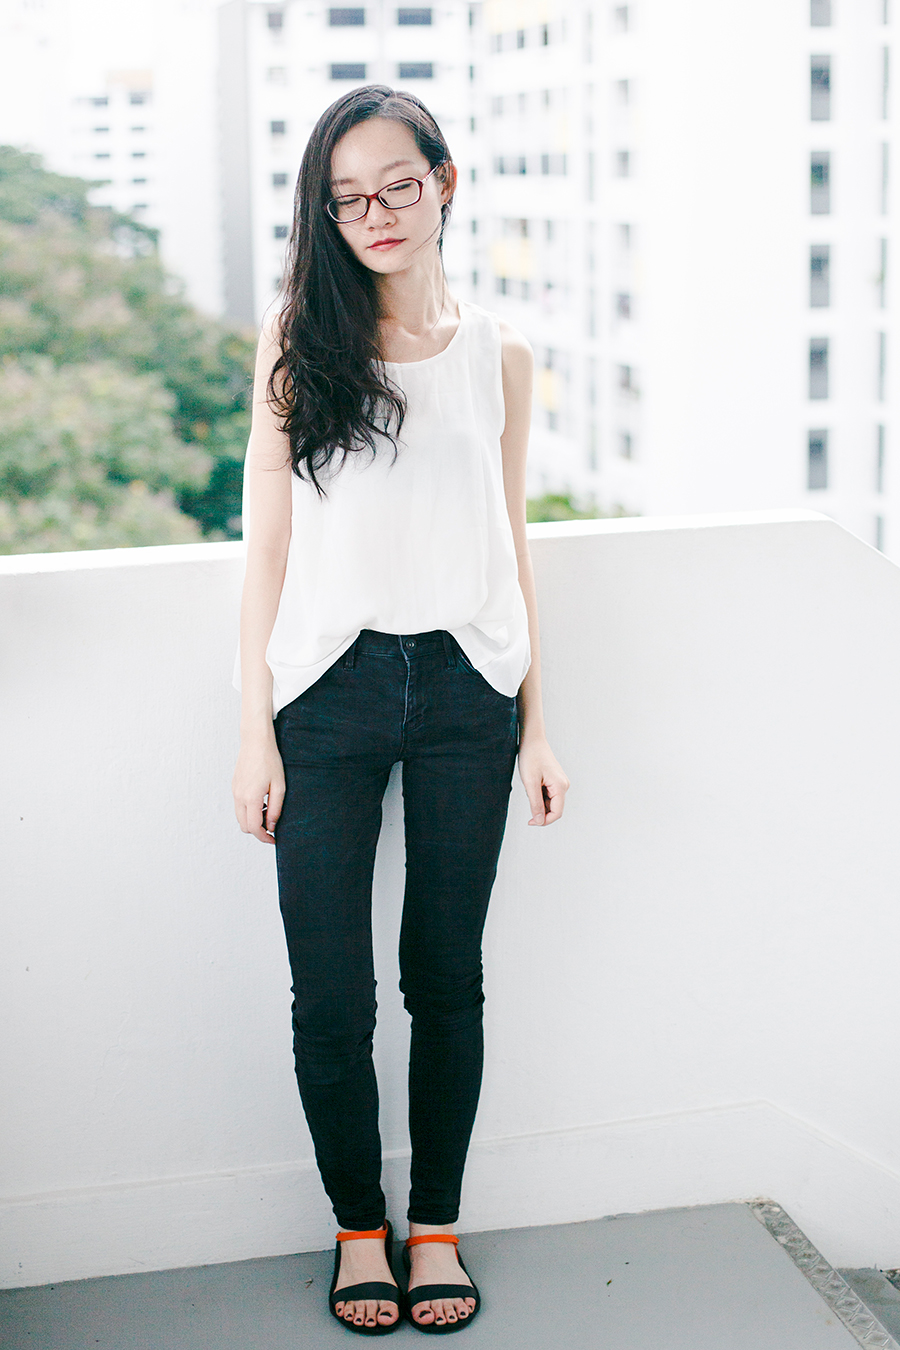 Monochrome outfit: Firmoo.com red prescription glasses, Dresslink backless white chiffon top, Uniqlo black ultra stretch jeans, BlackOut SG custom sandals.